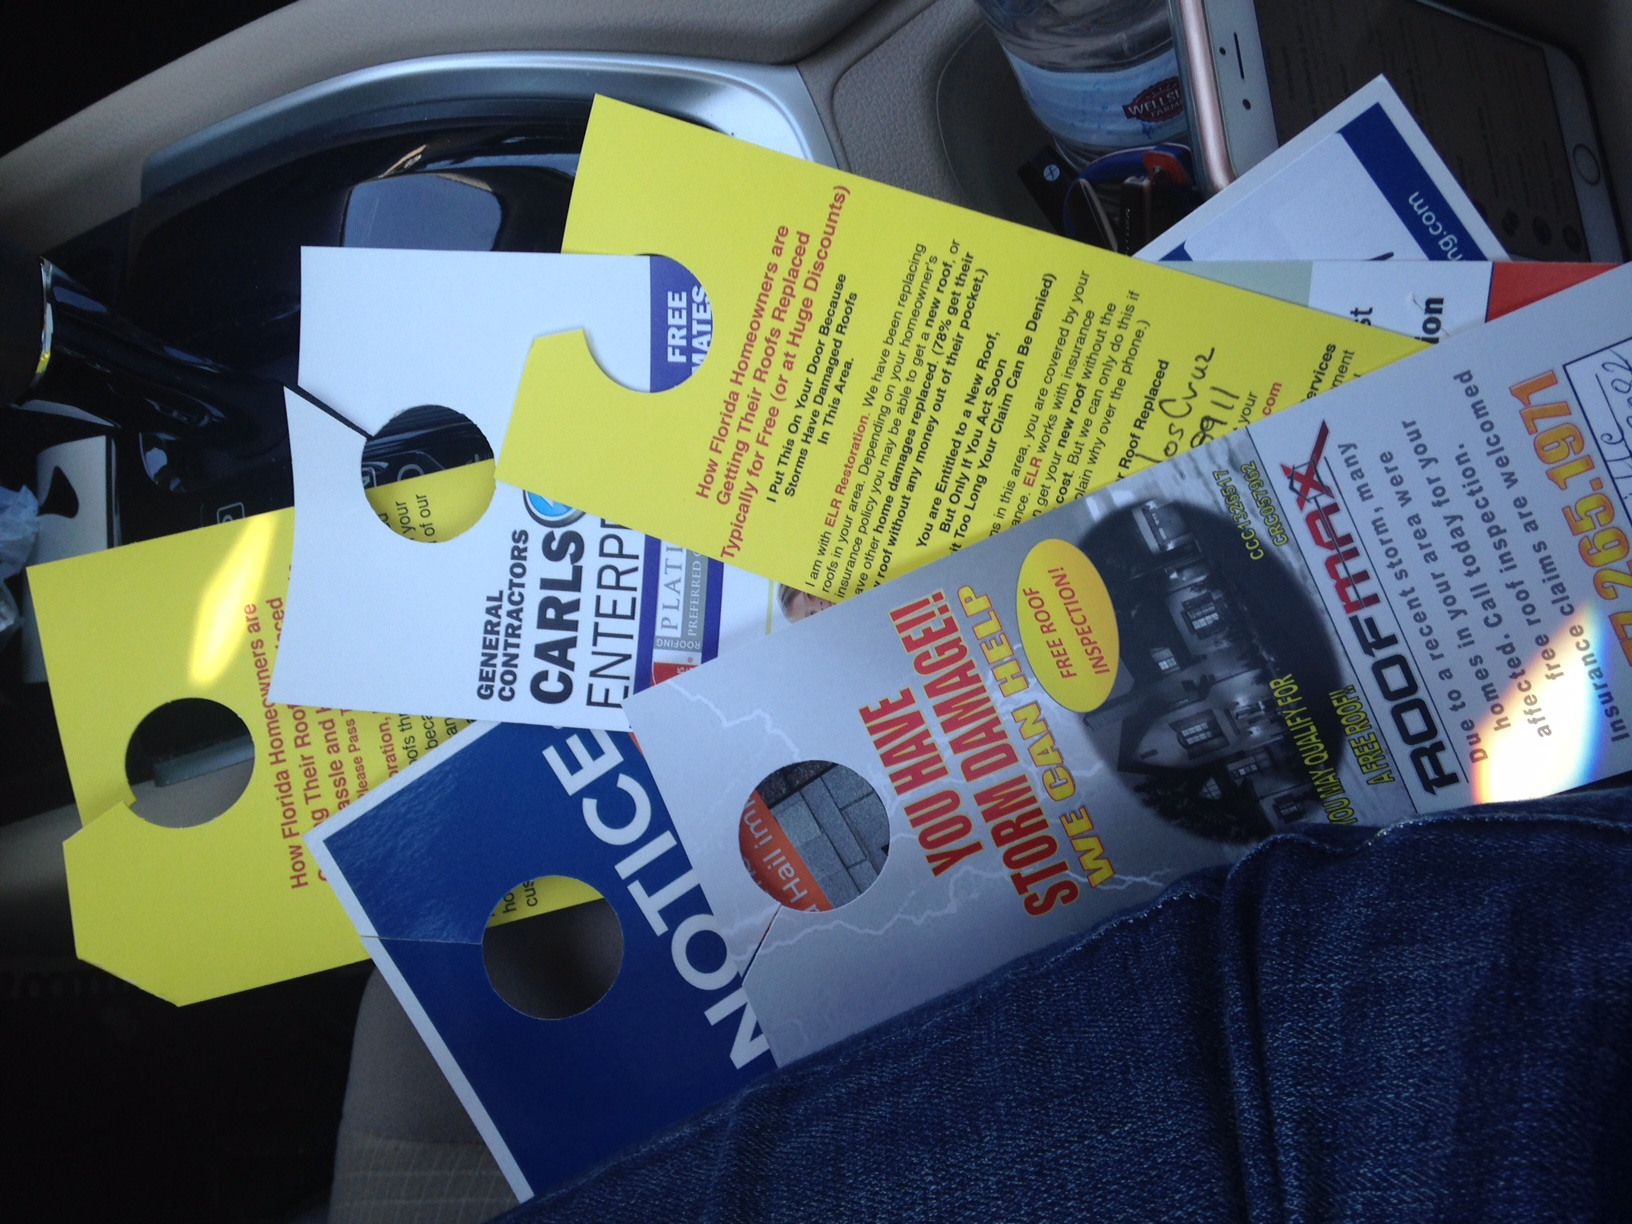 Assignment of Benefits--Five Roofing Flyers after Hail Storm